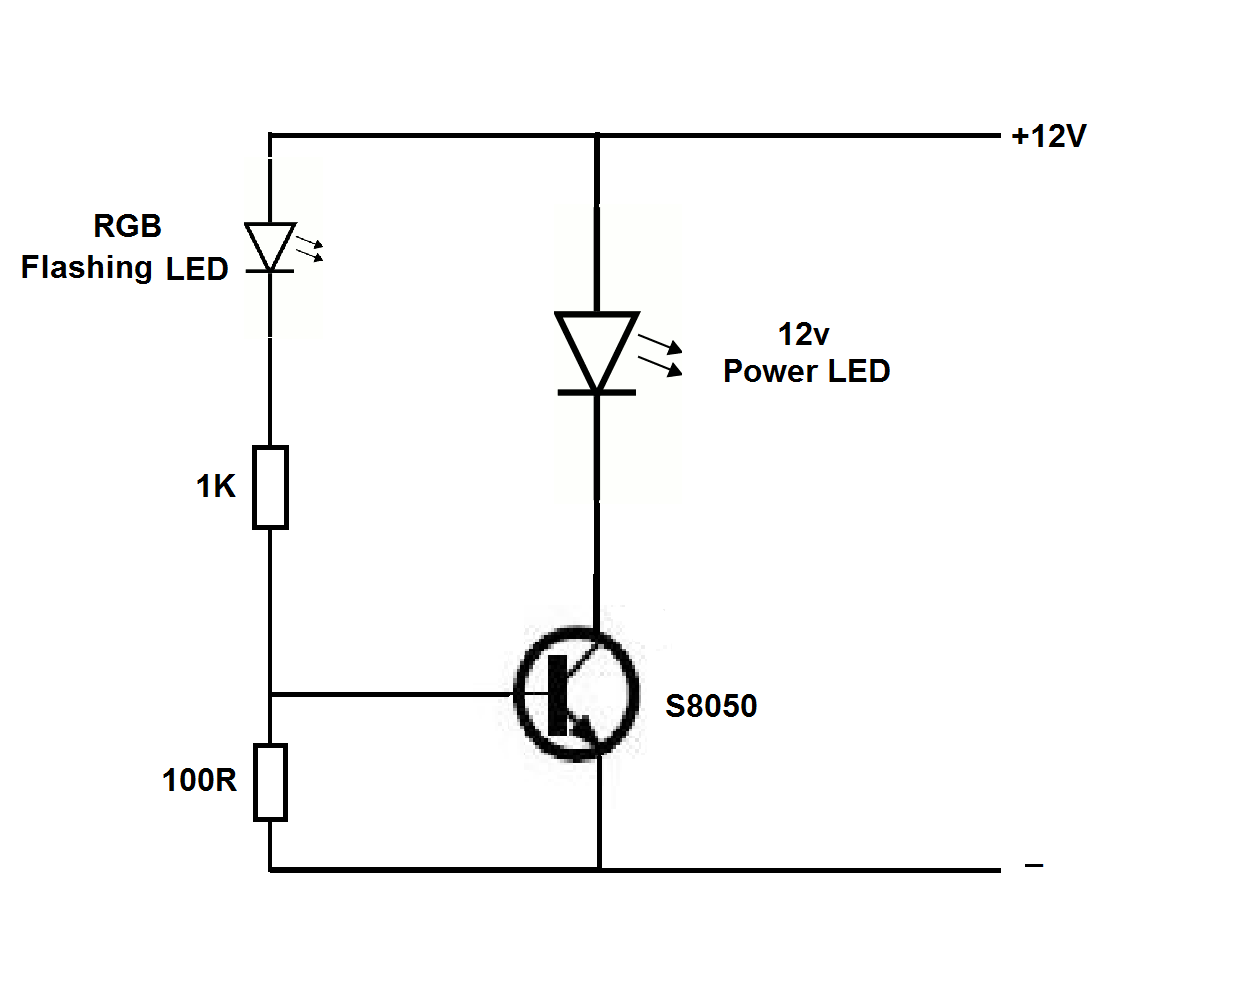 12v led wiring diagram 12v led circuit diagram